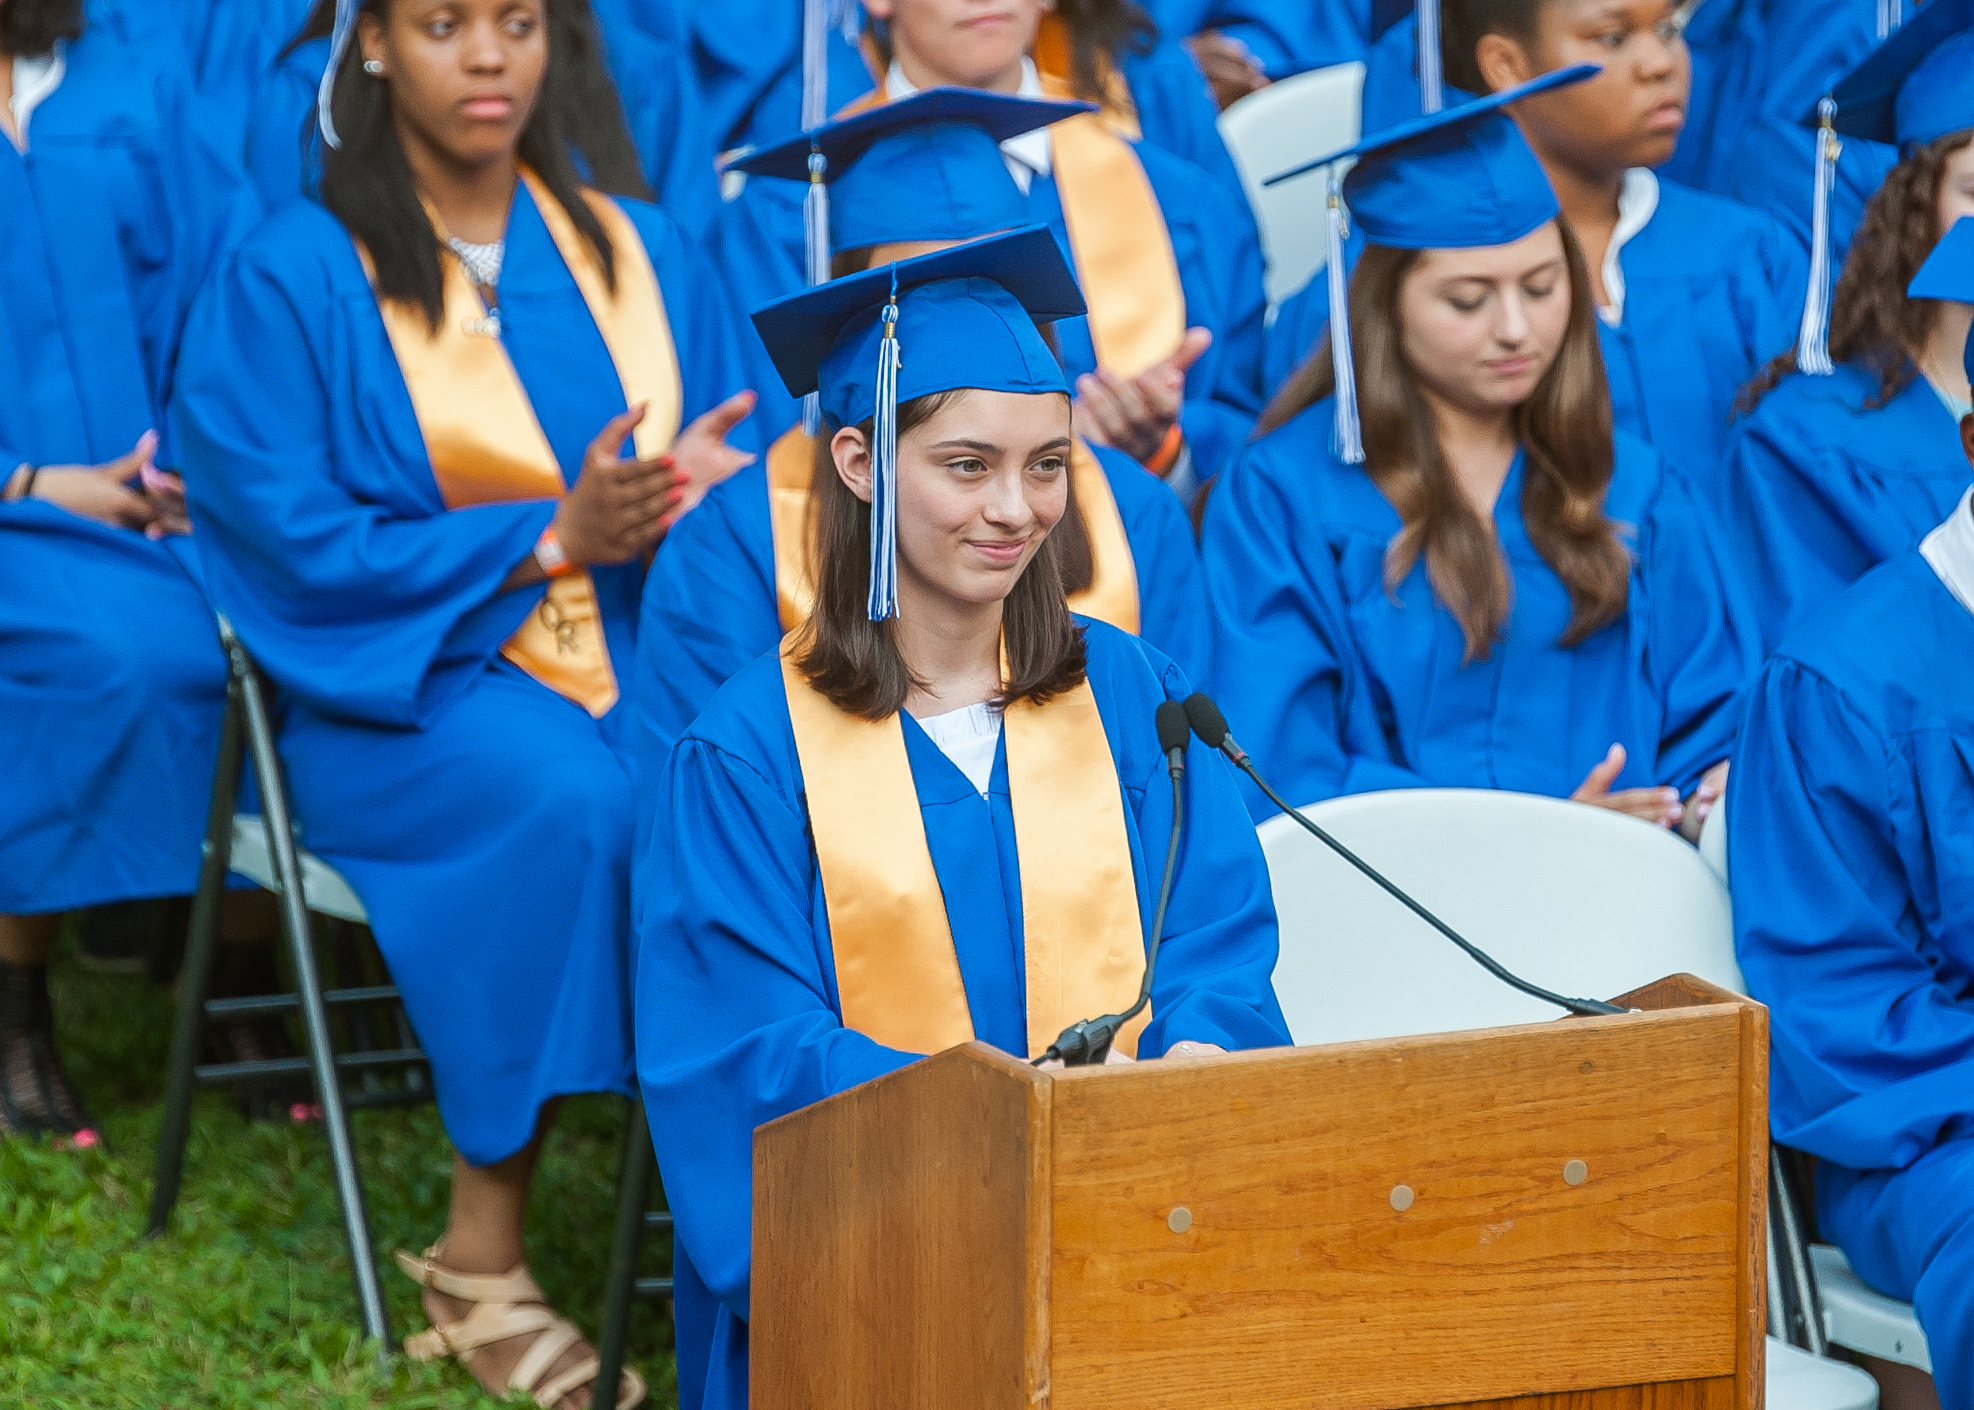 Class President Cristi Kennedy giving her speech. Photo by Scott Kennedy for The Montclair Dispatch.